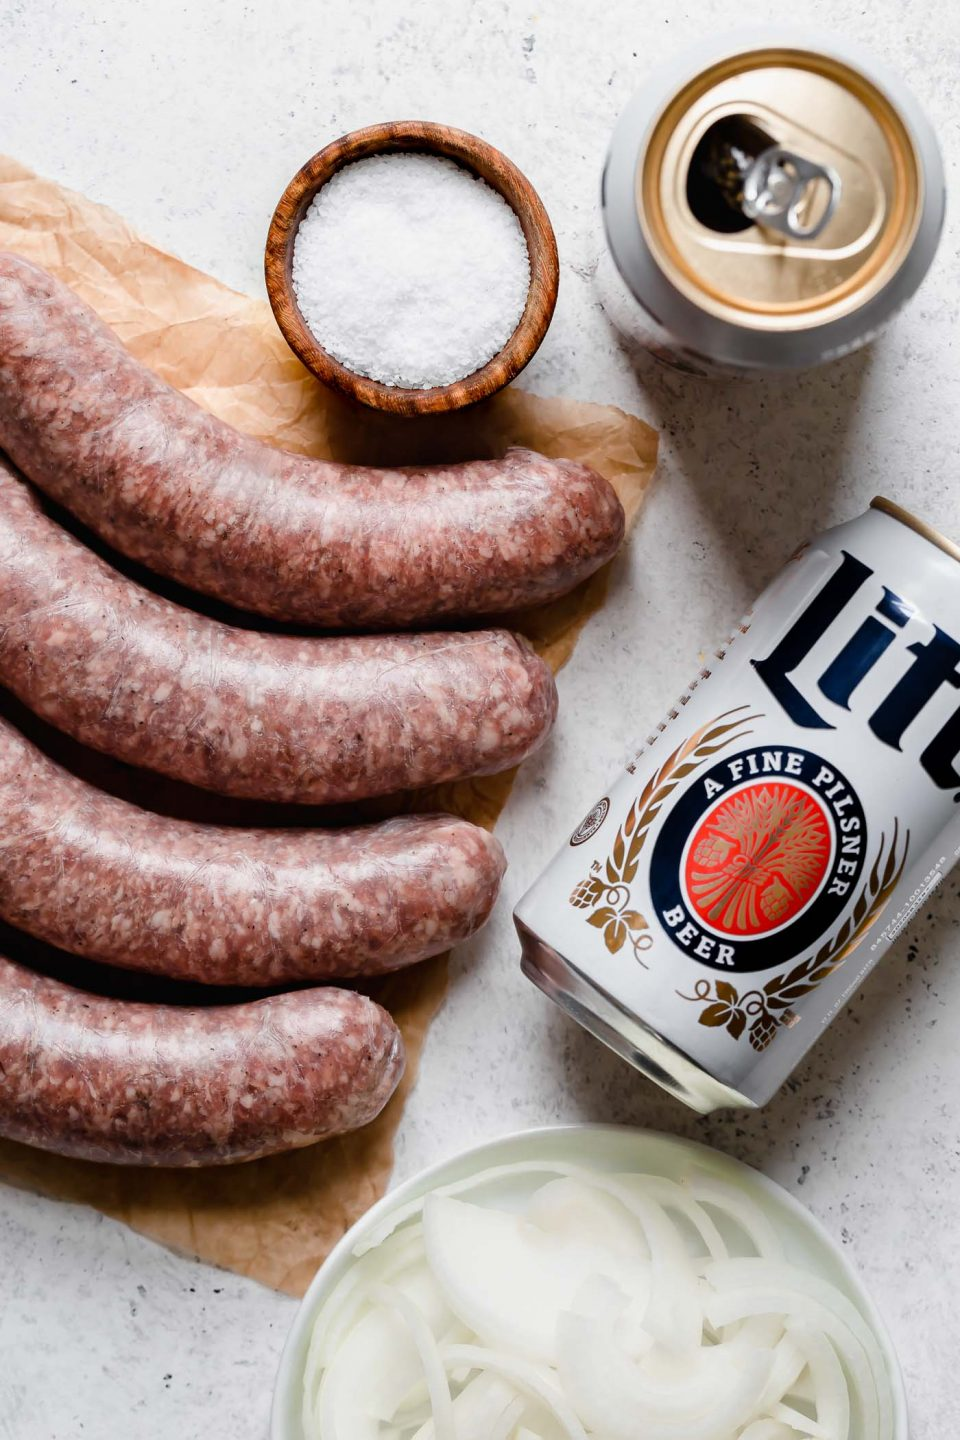 Beer brats ingredients arranged on a white surface - raw bratwurst sausage on a small piece of parchment paper, next to 2 cans of Miller Light & a white dish of thinly sliced onion.